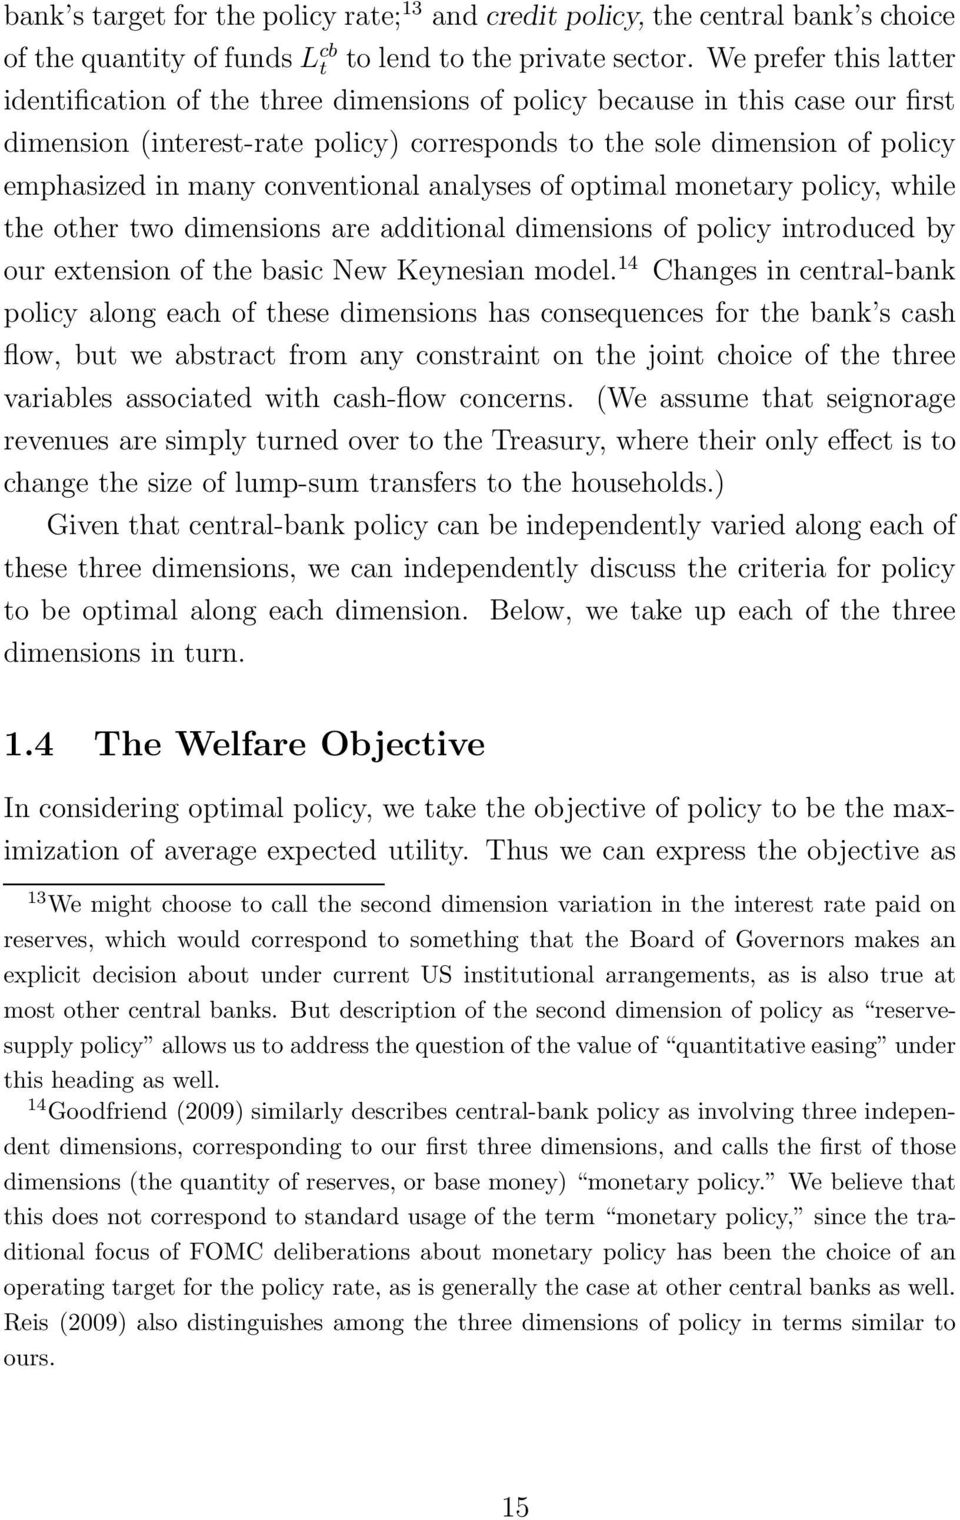 conventional analyses of optimal monetary policy, while the other two dimensions are additional dimensions of policy introduced by our extension of the basic New Keynesian model.